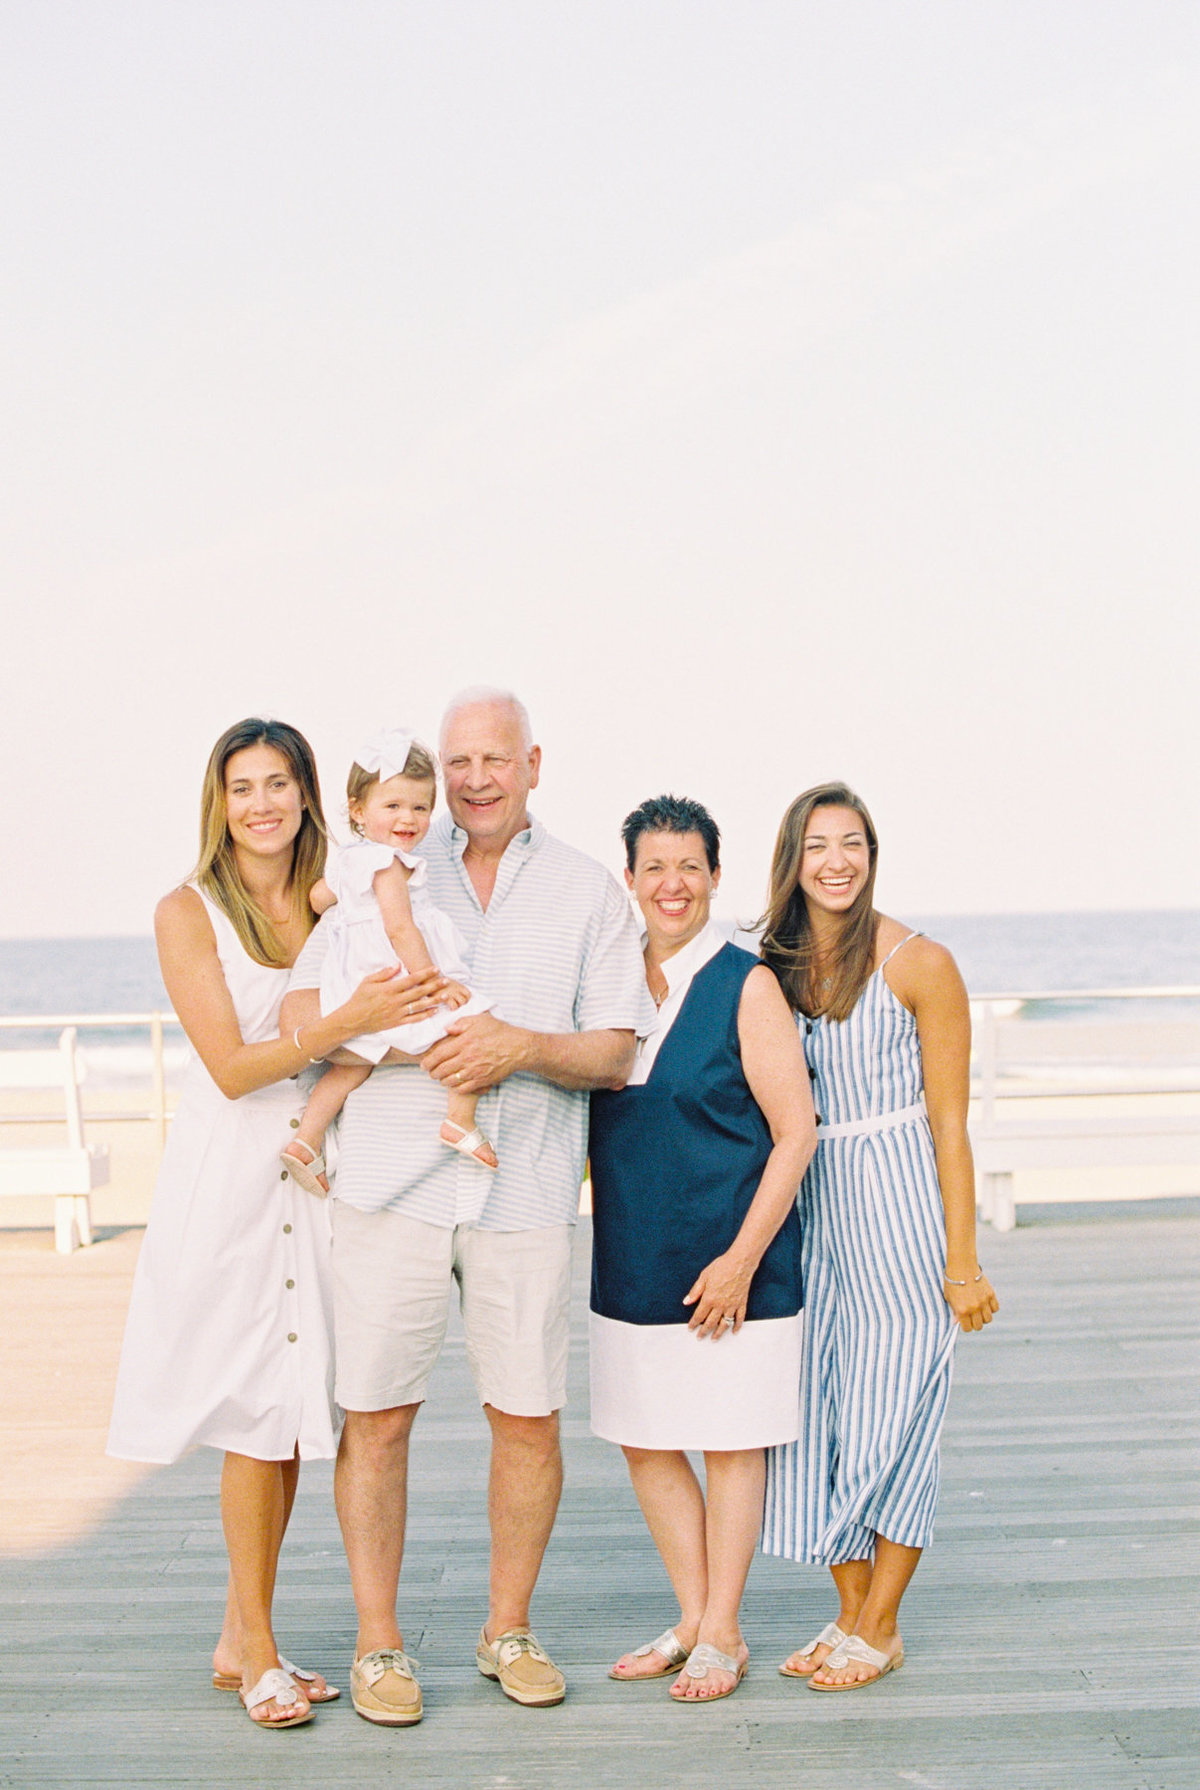 Michelle Behre Photography NJ Fine Art Photographer Seaside Family Lifestyle Family Portrait Session in Avon-by-the-Sea-106